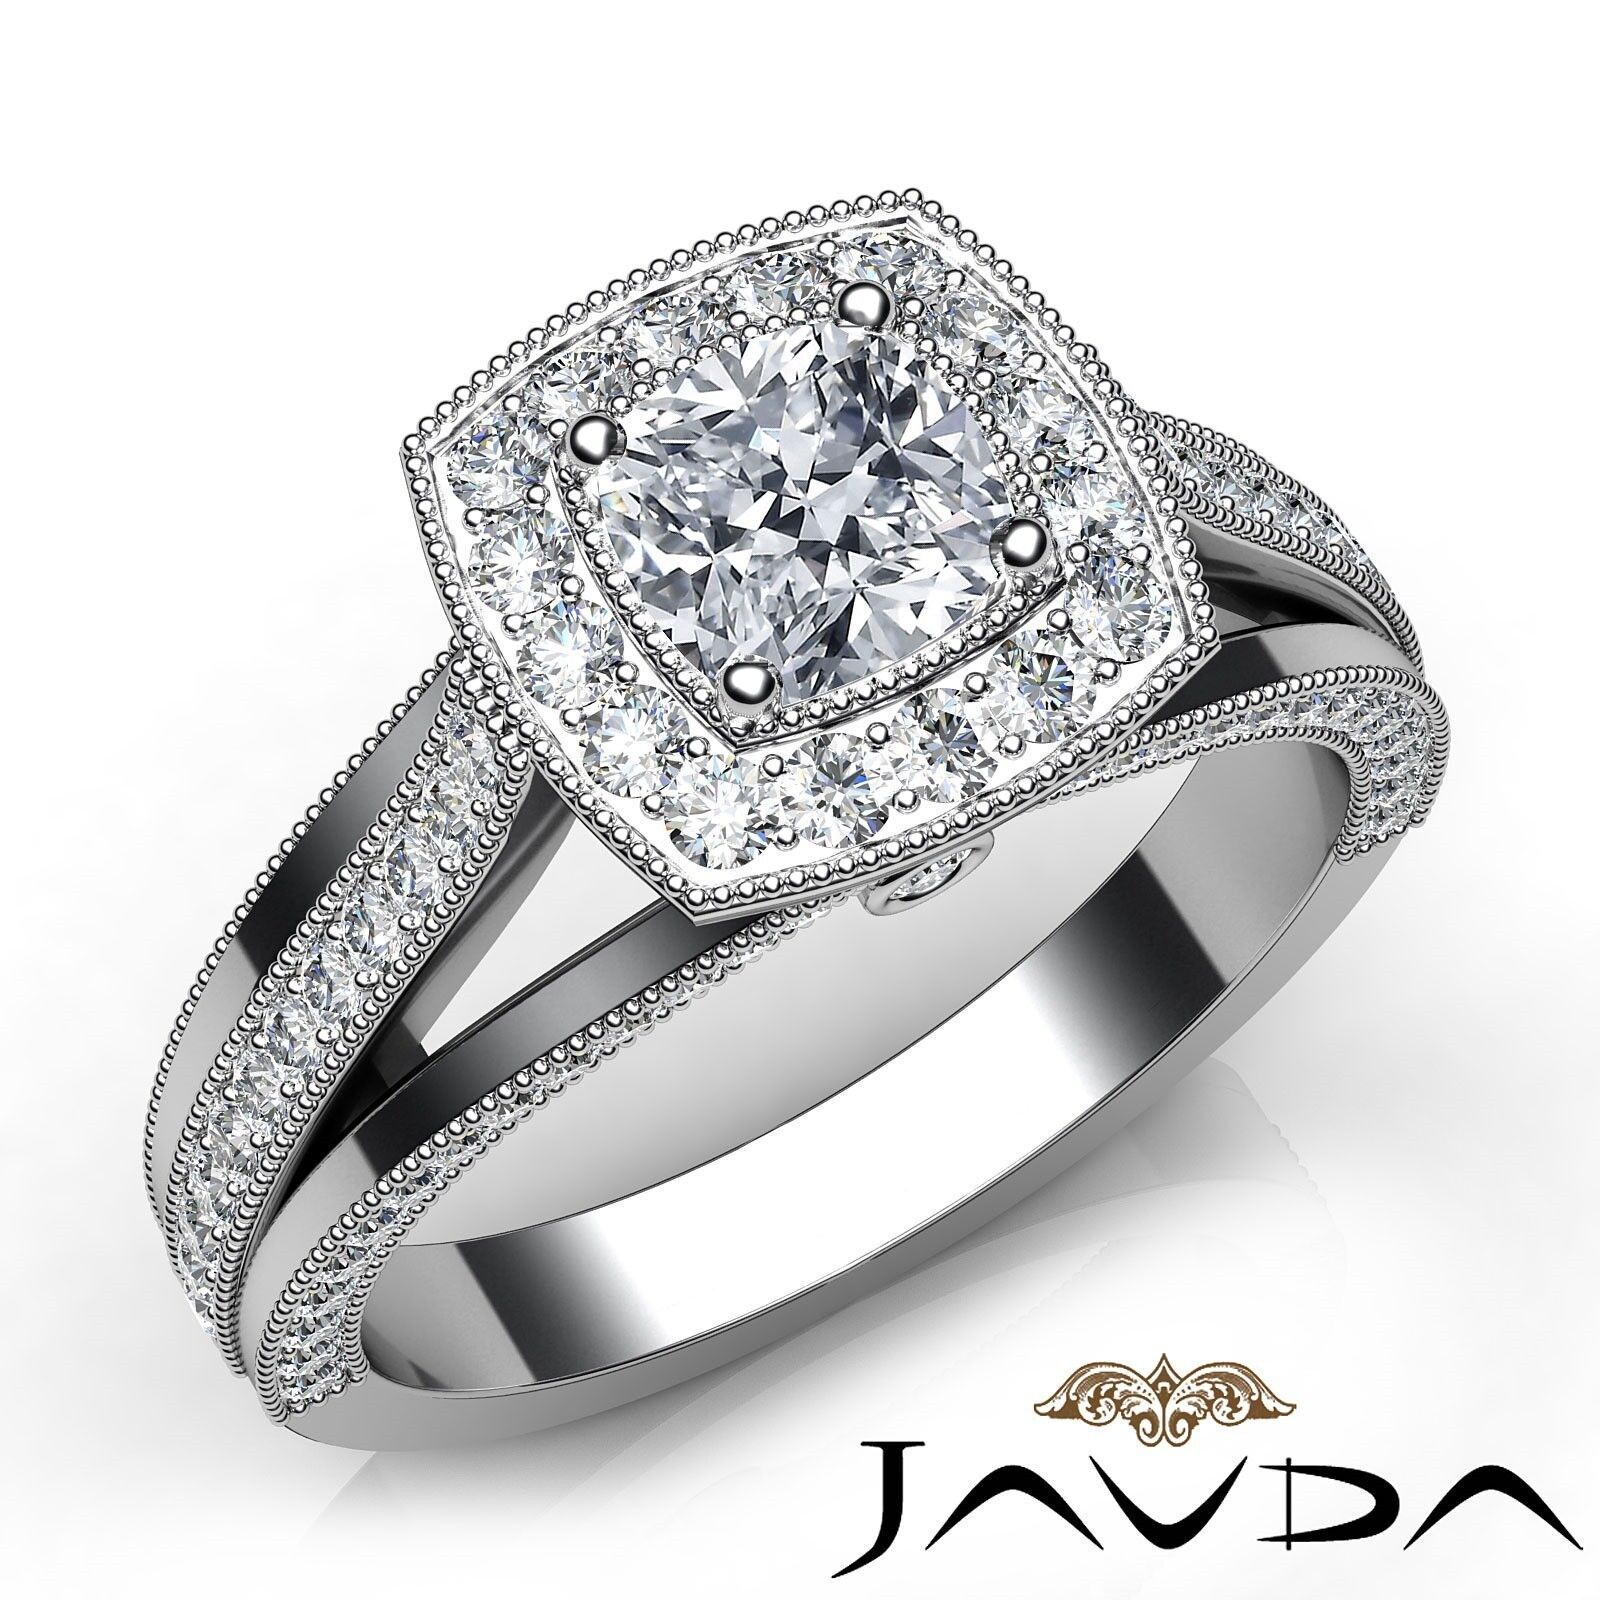 1.7ctw Milgrain Halo Bezel Cushion Diamond Engagement Ring GIA G-VVS1 White Gold